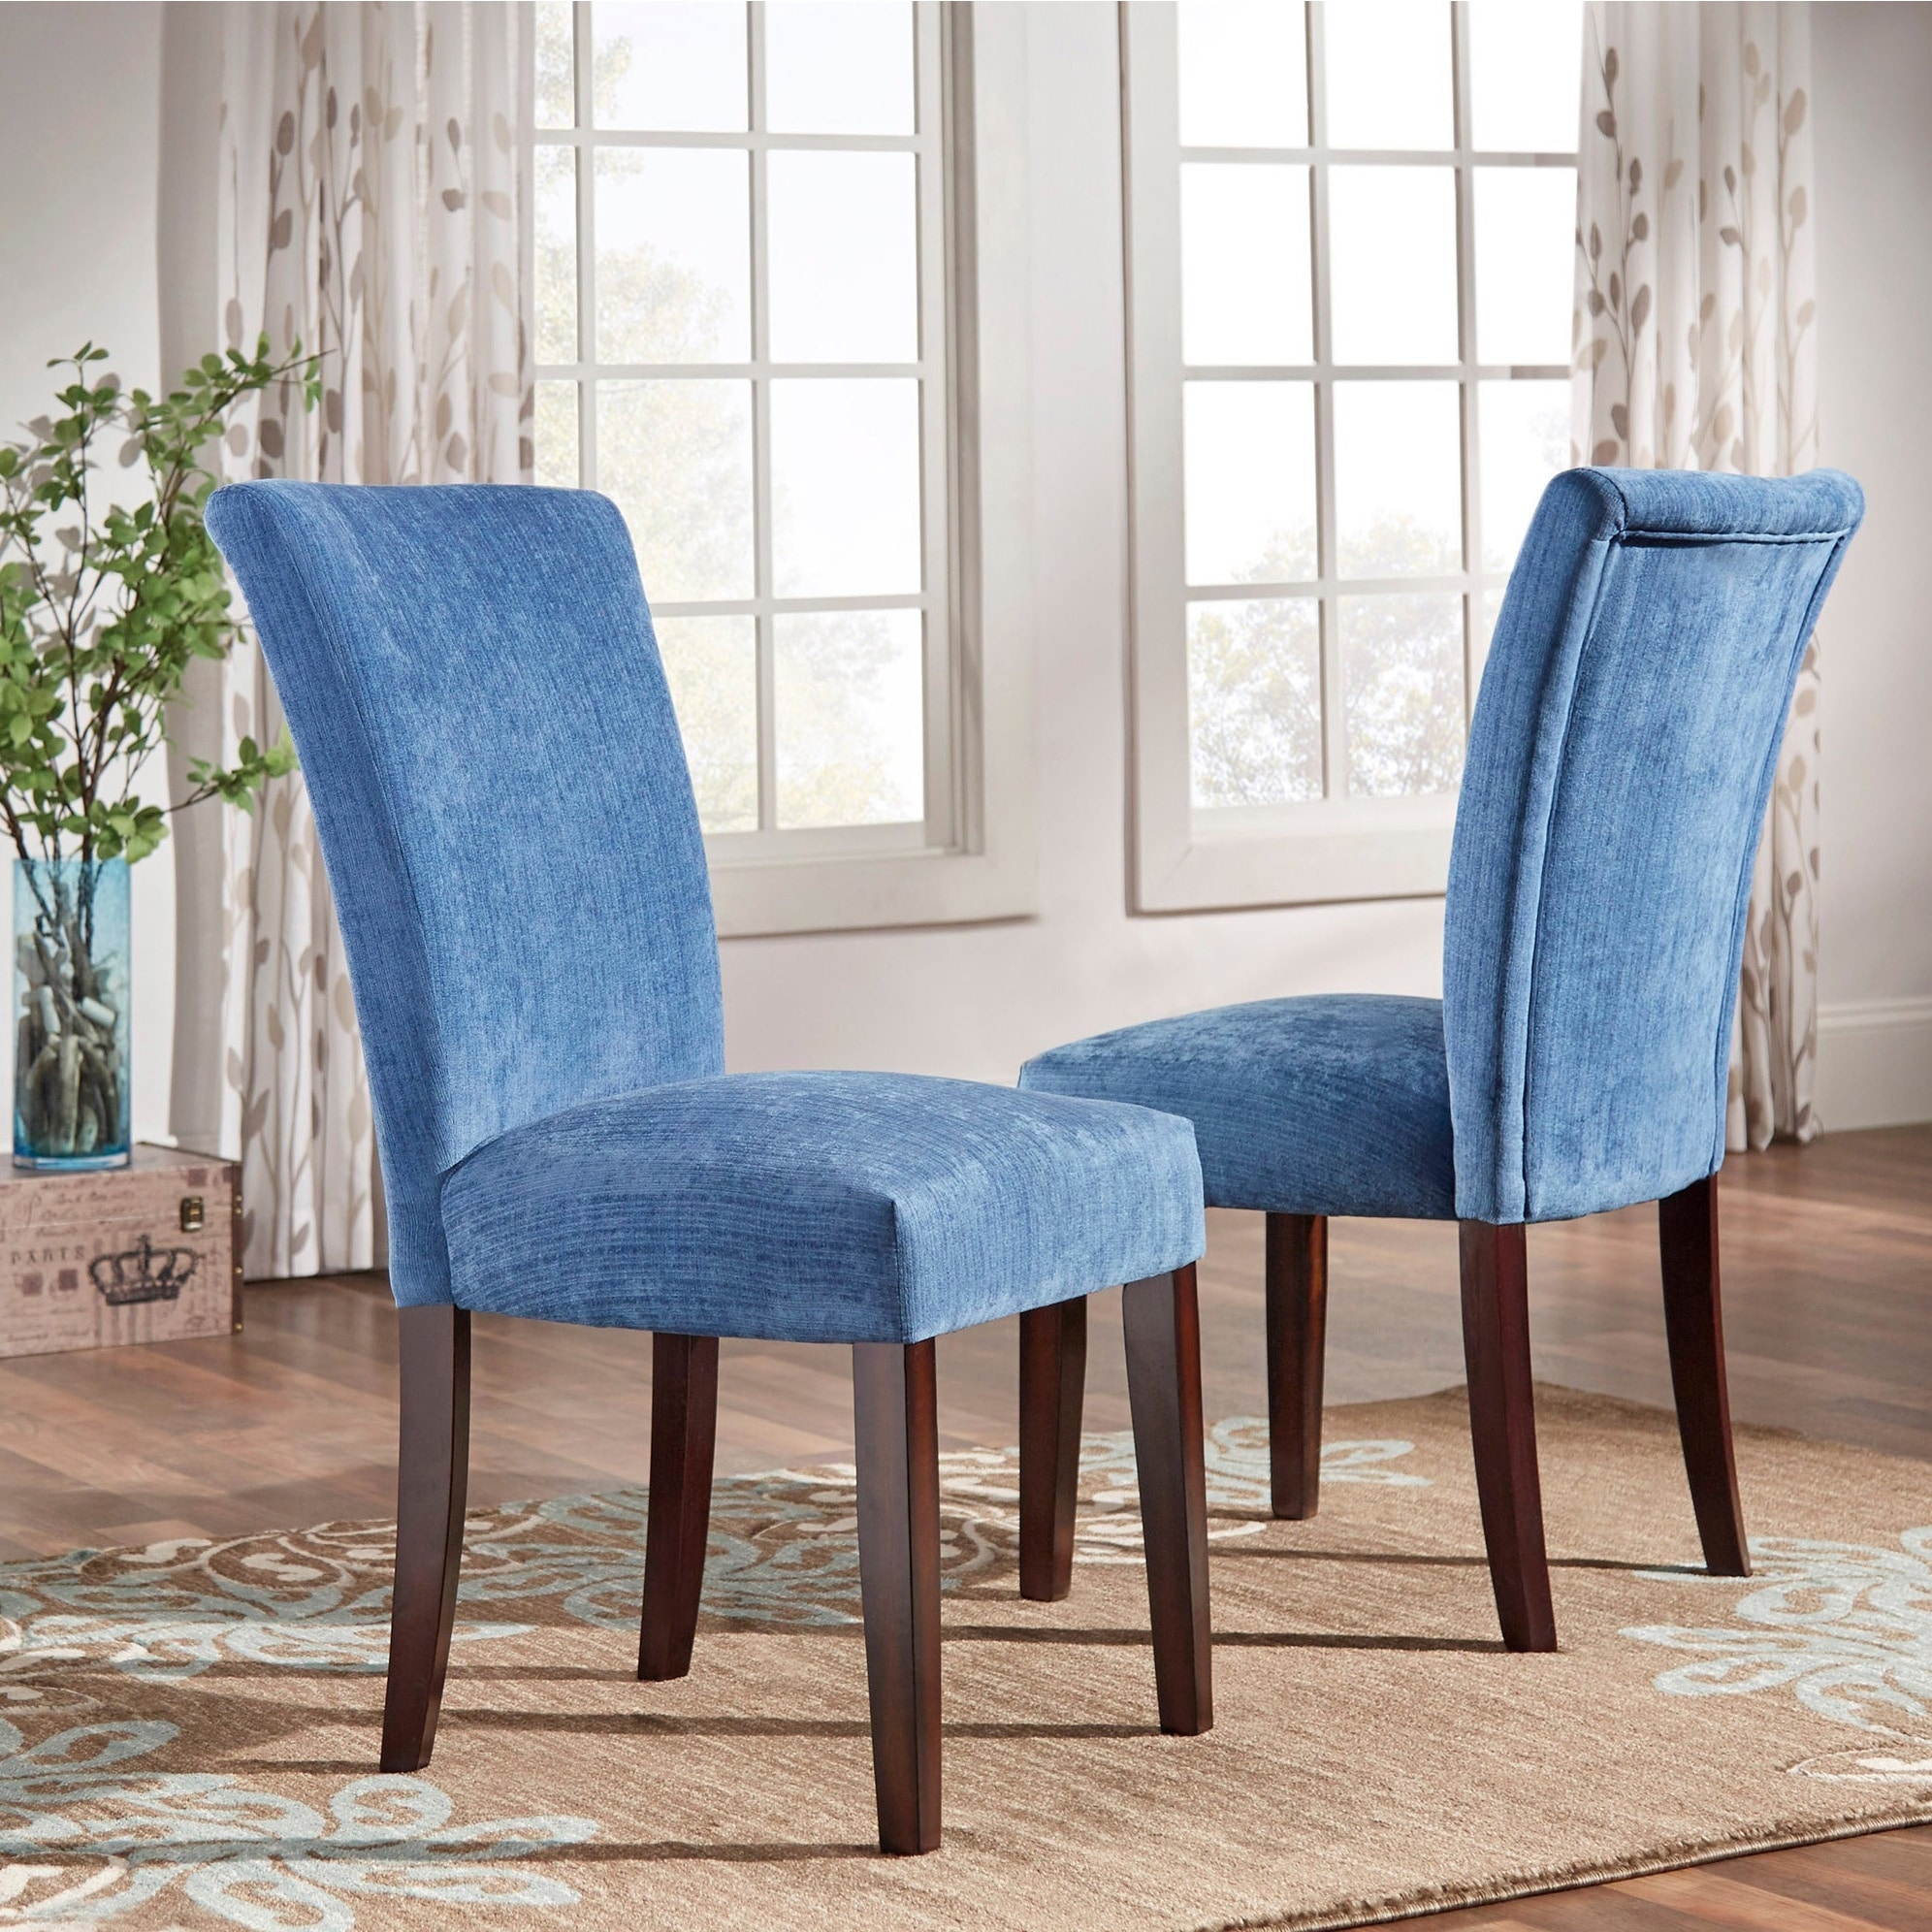 Parson Classic Upholstered Dining Chair (Set Of 2) By INSPIRE Q Bold (Option